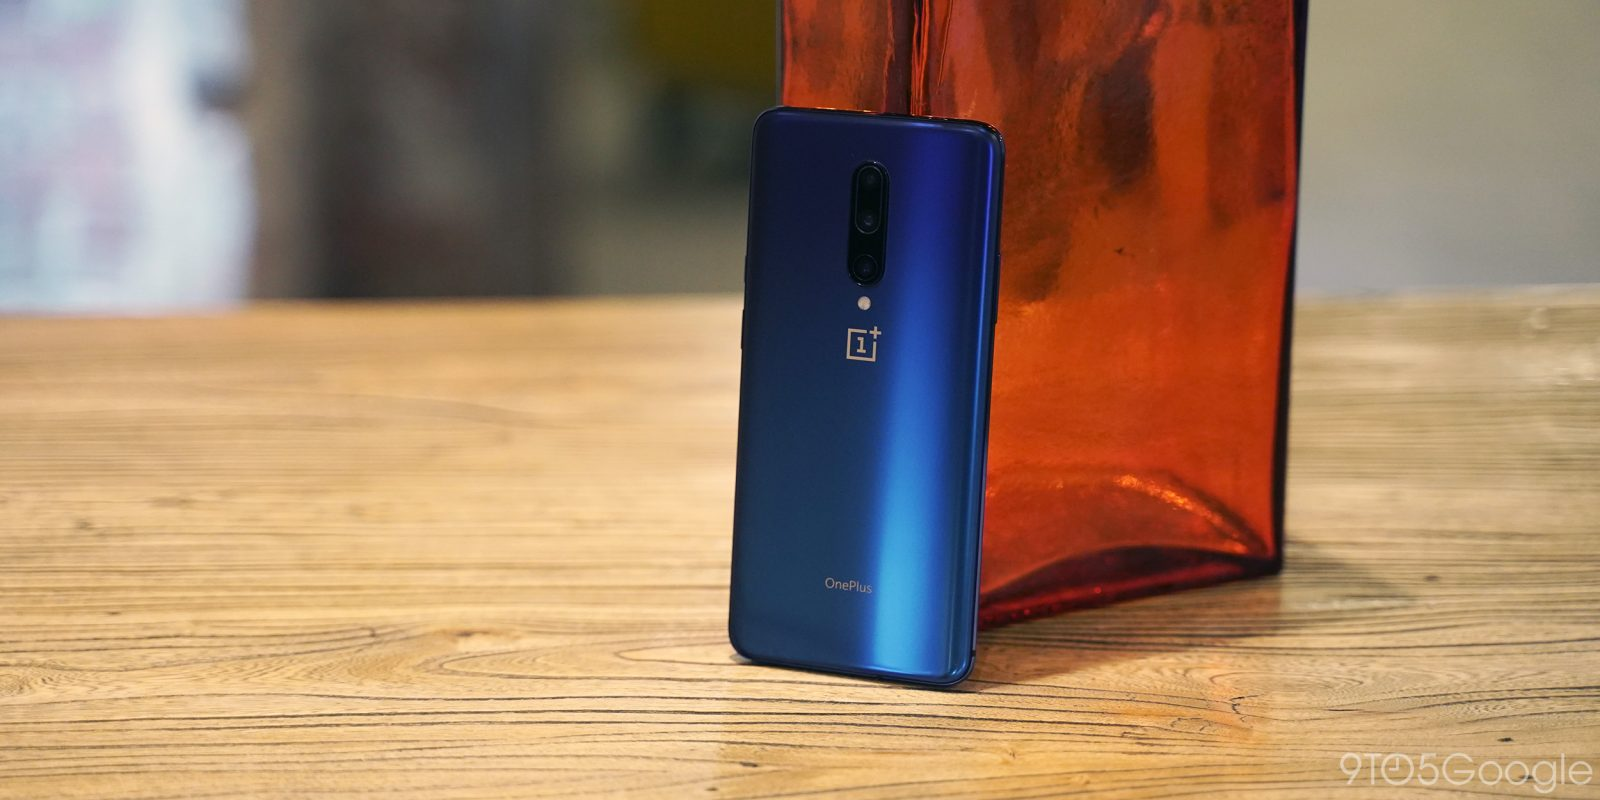 Android 10-based OxygenOS rolling out now to OnePlus 7 Pro